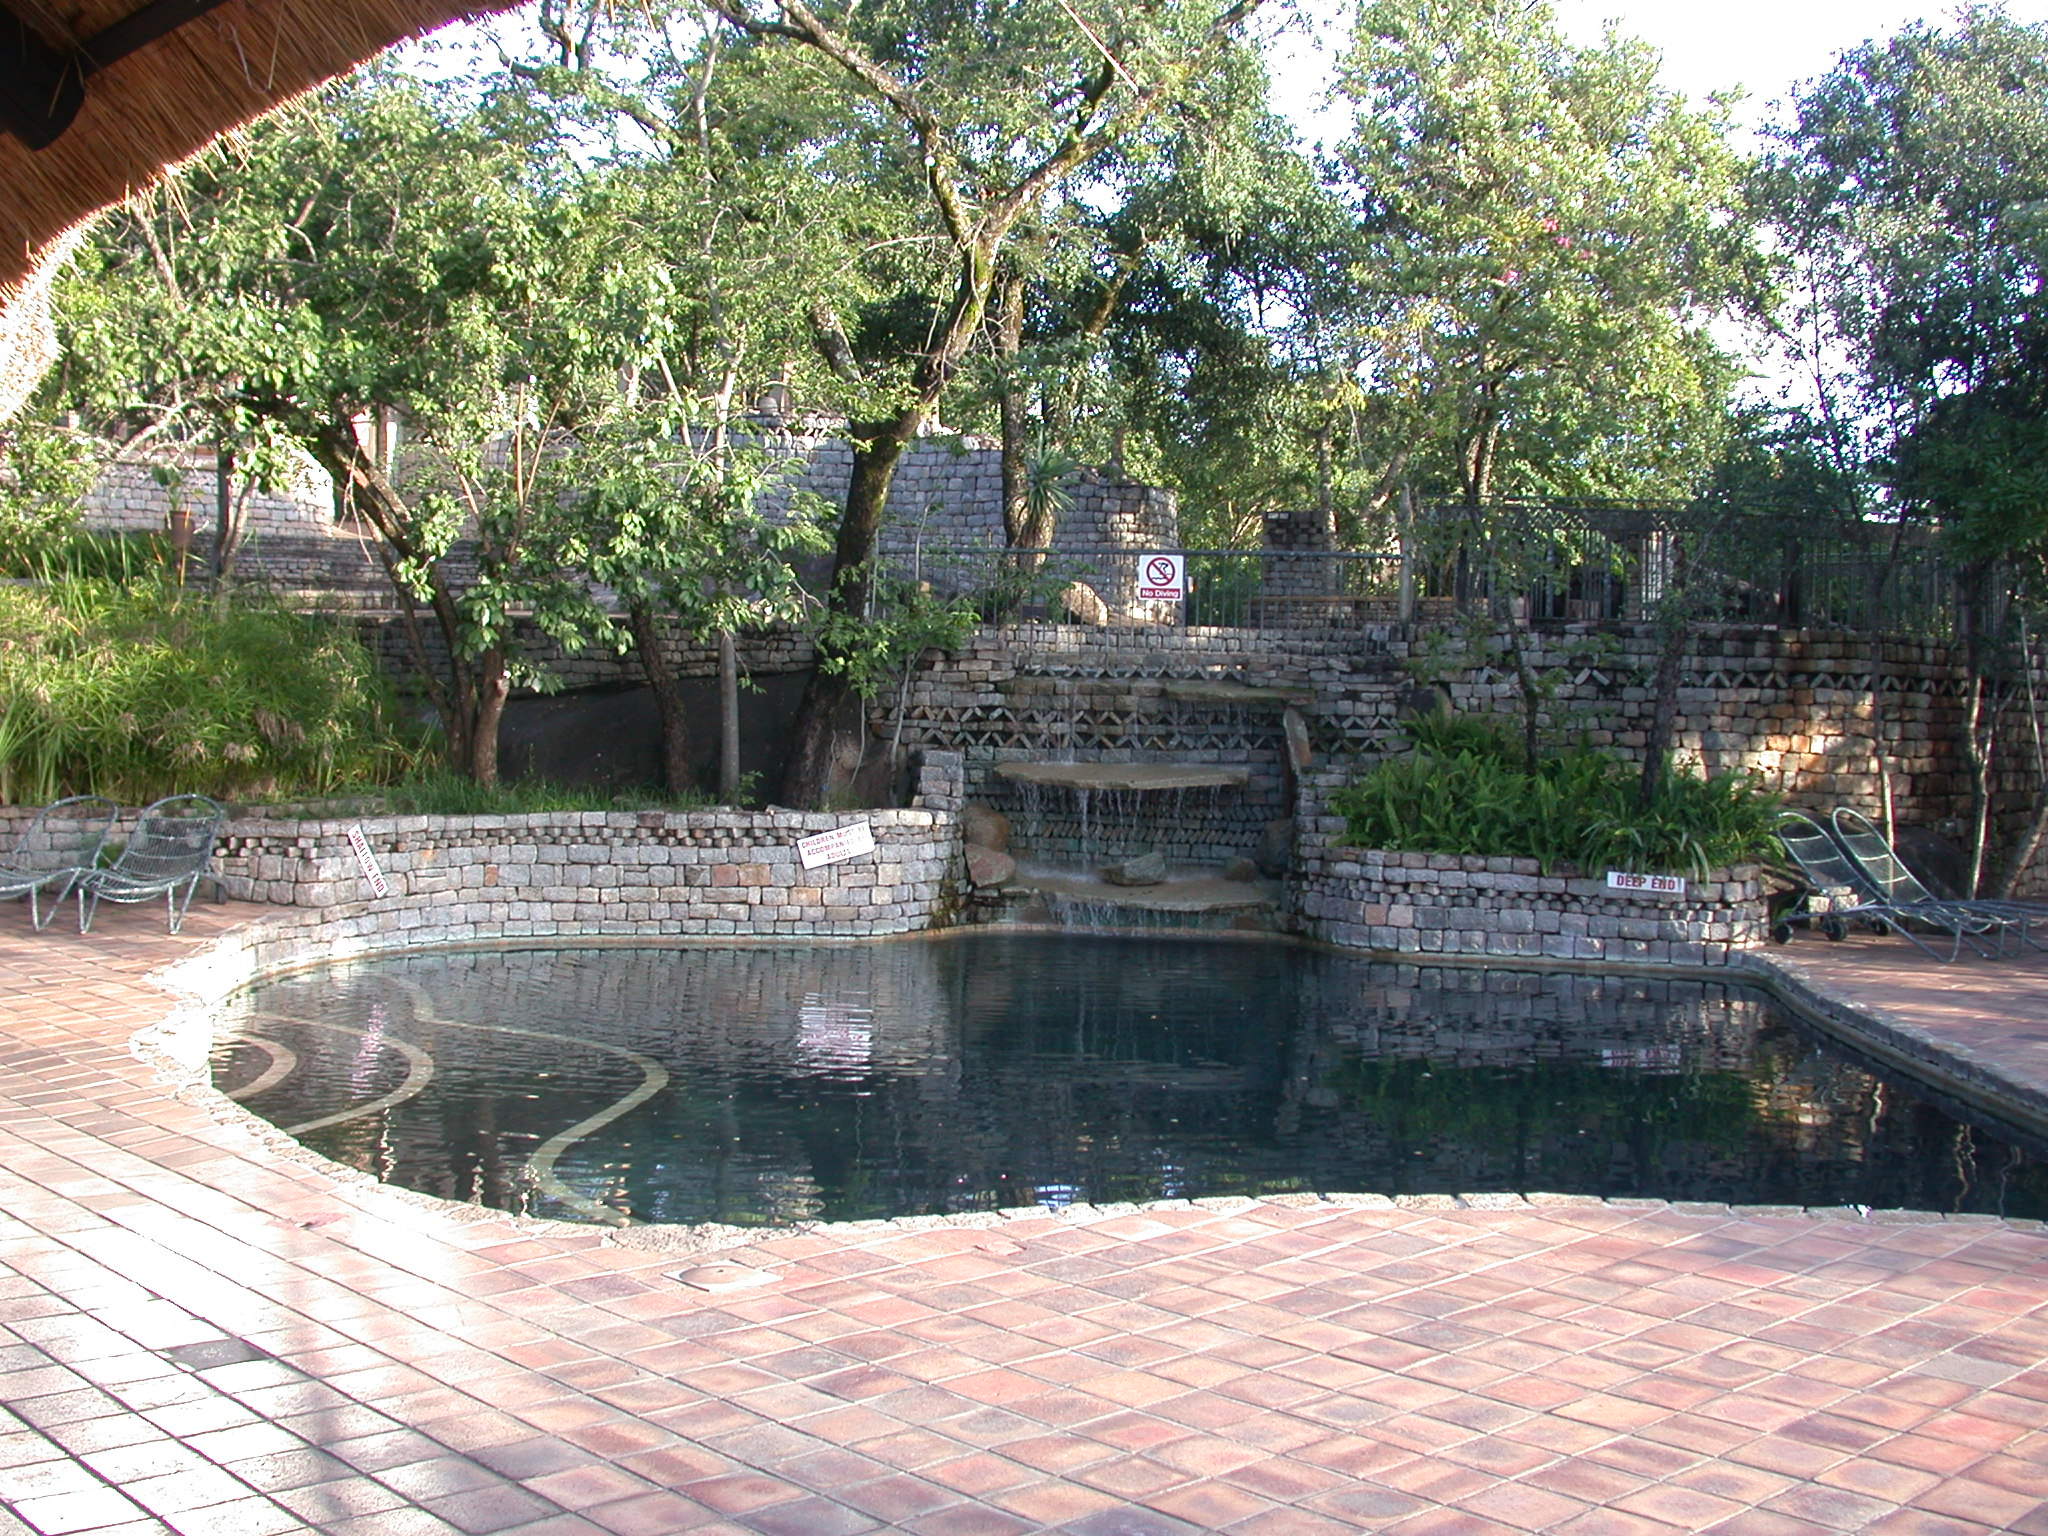 Swimming Pool at the Ancient City Lodge, Great Zimbabwe, Outside Masvingo, Zimbabwe